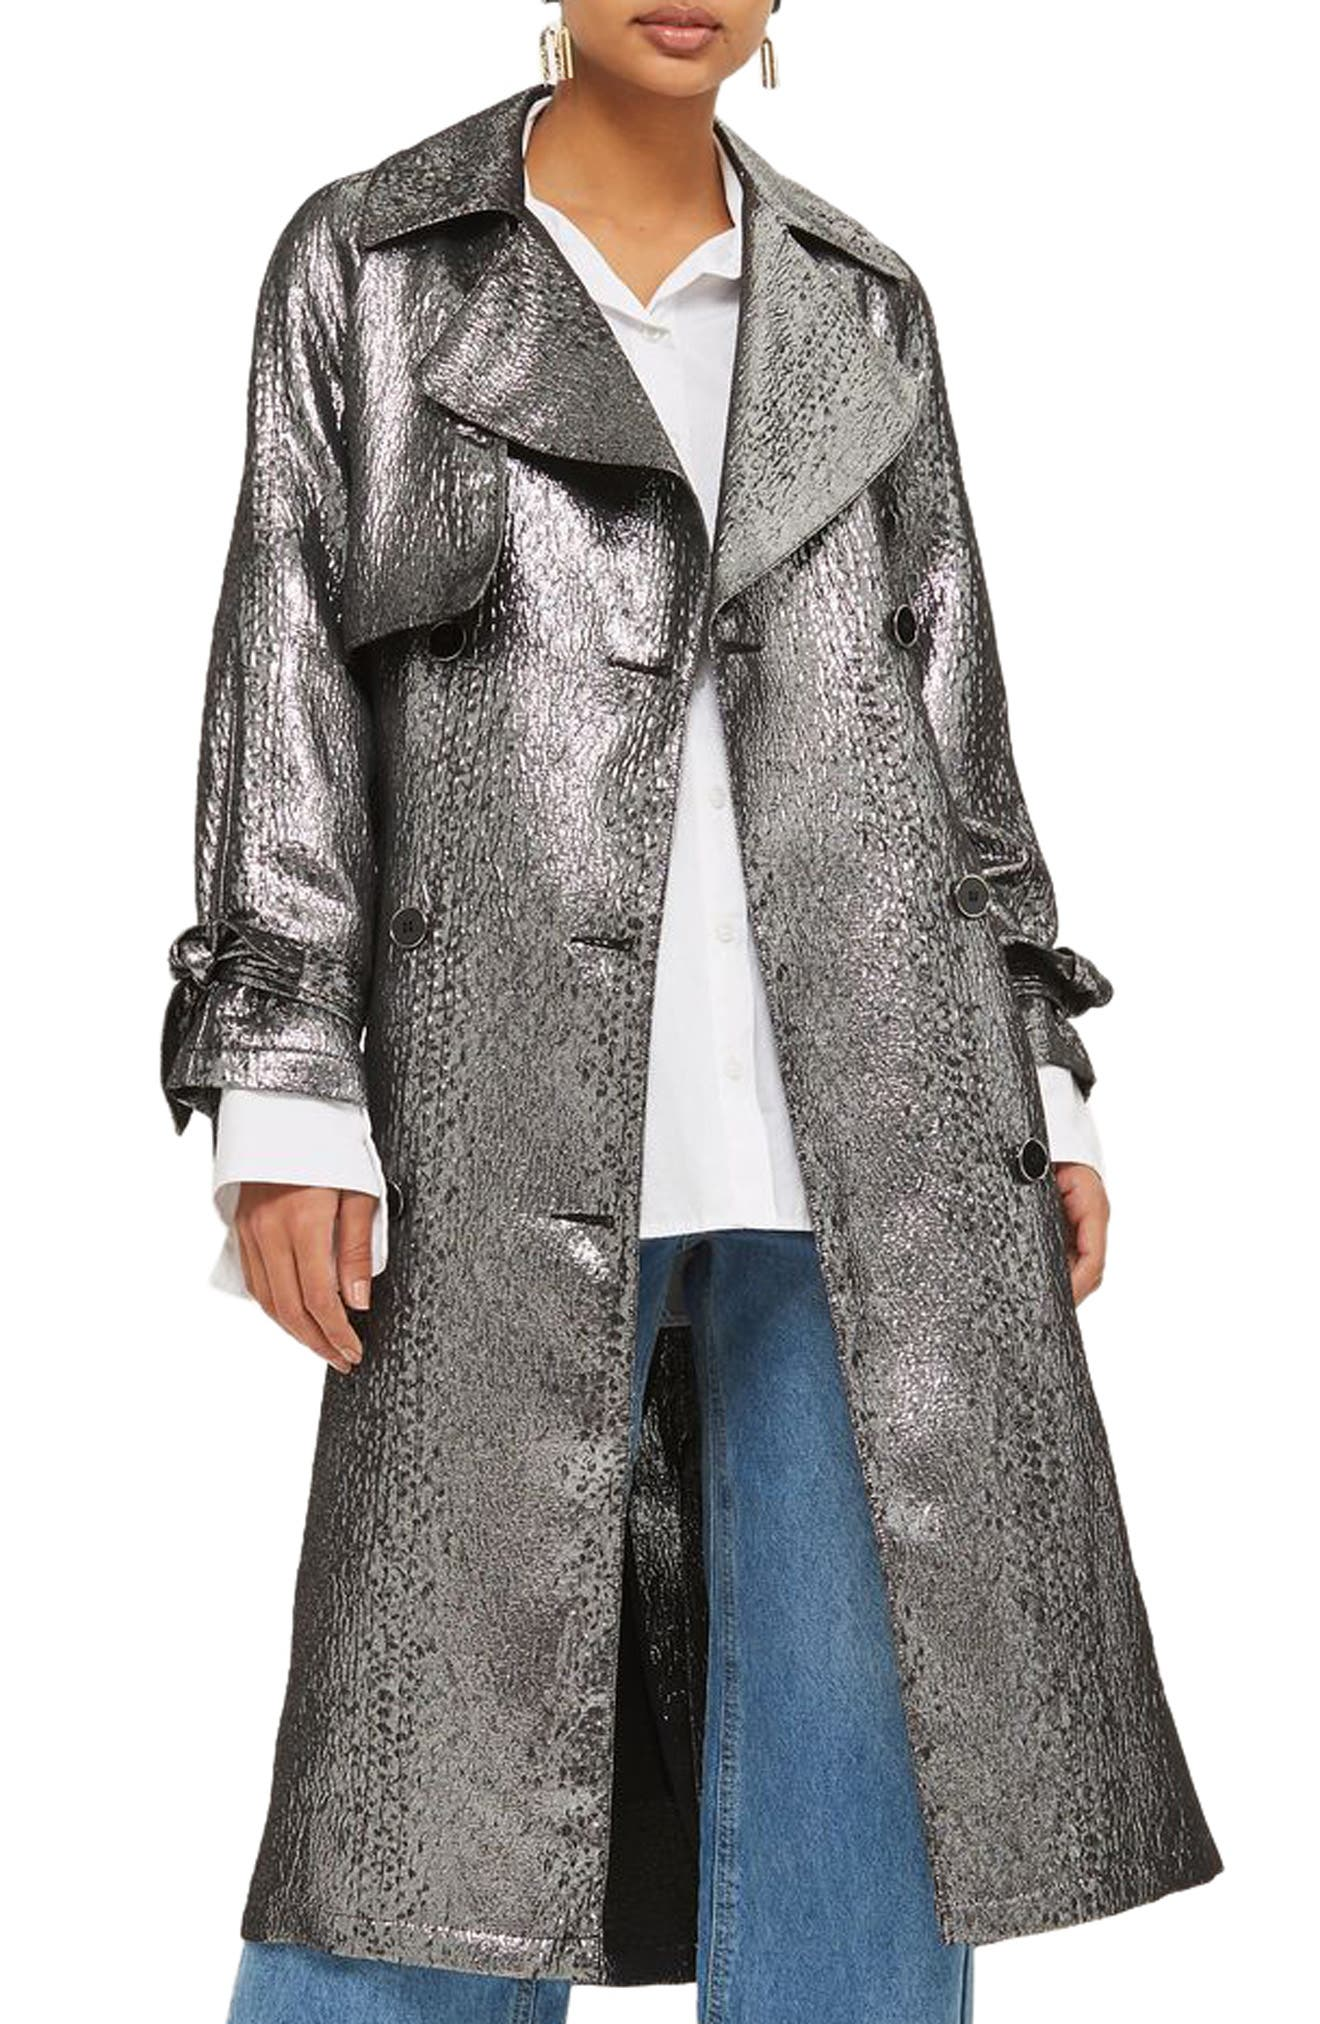 Topshop Metallic Trench Coat